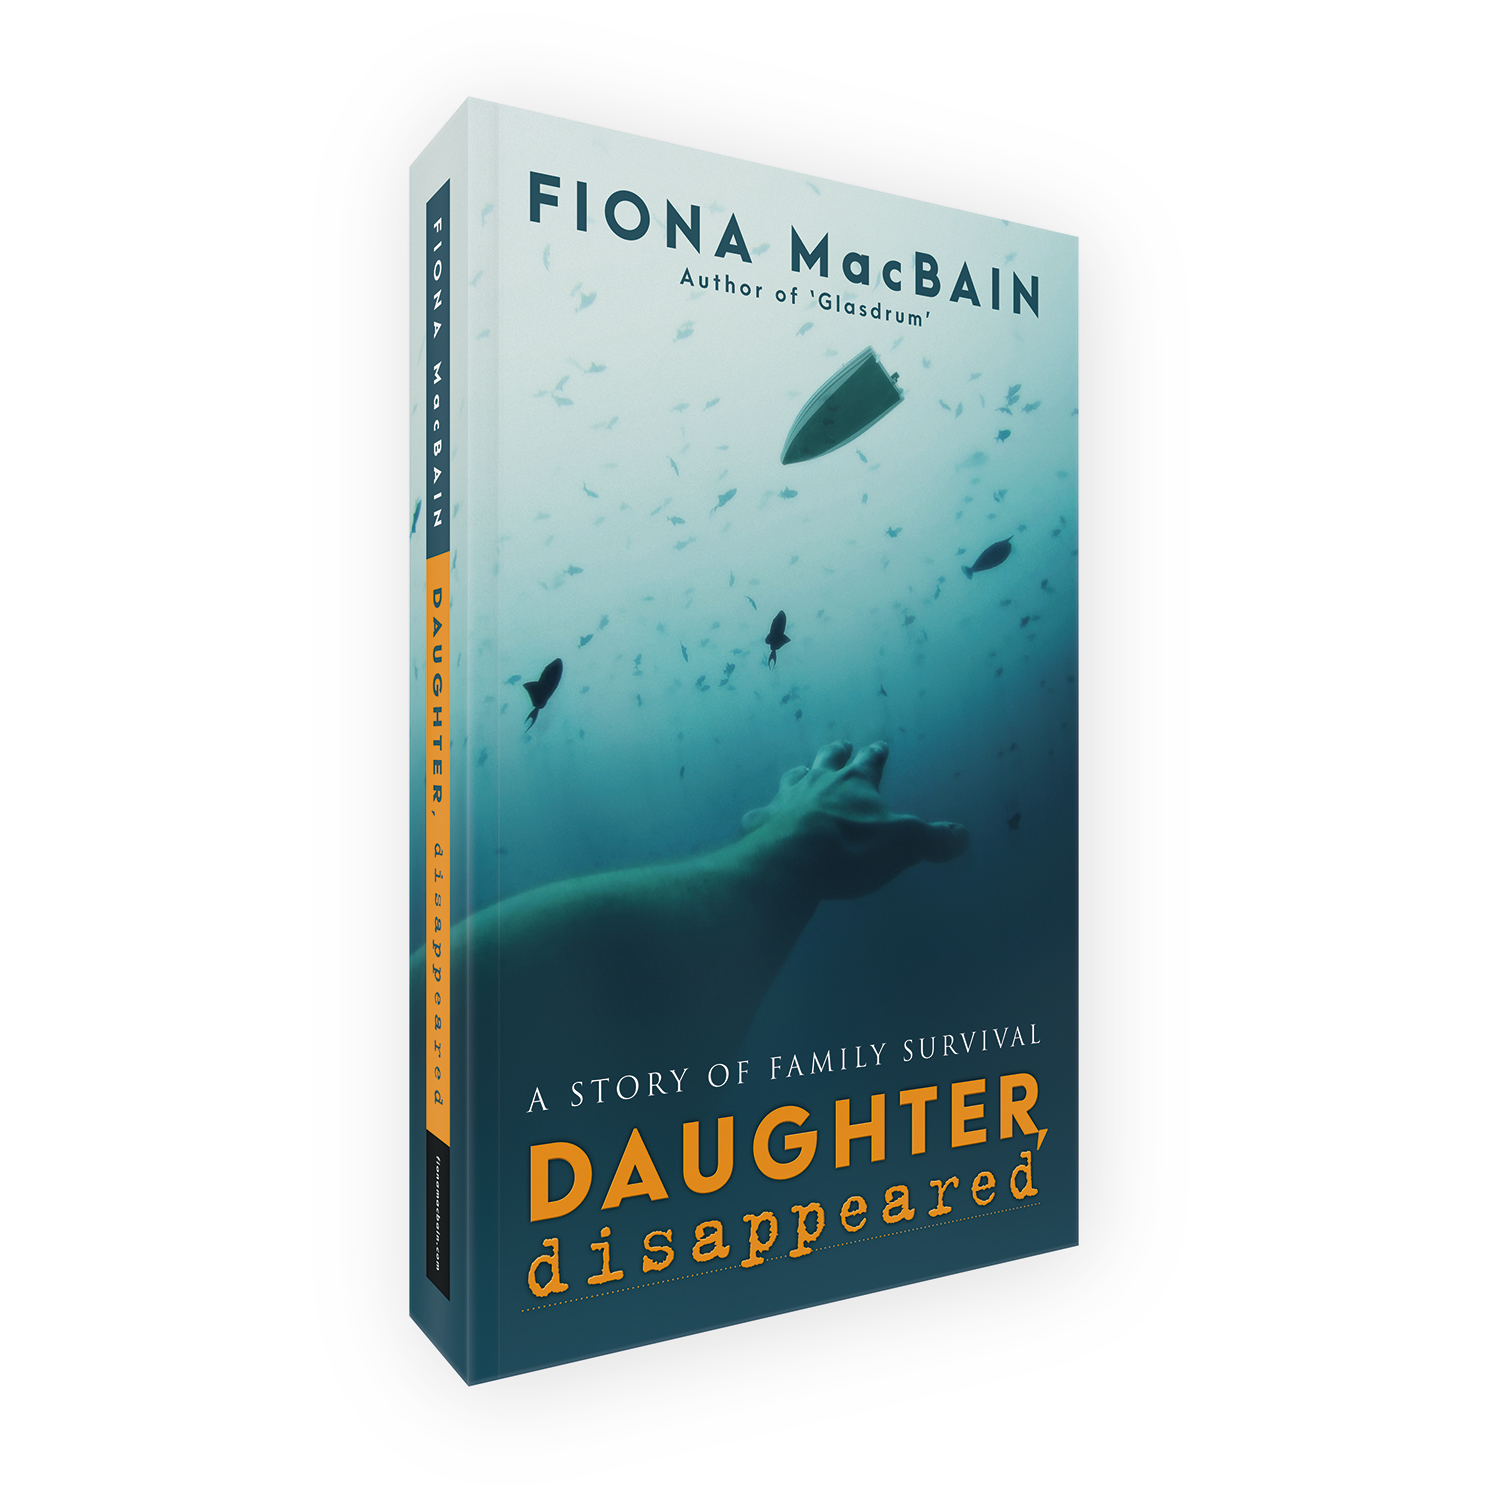 'Daughter, Disappeared' is a Tunisian-set dramatic novel, by author Fiona MacBain. The book cover & interior were designed by Mark Thomas, of coverness.com. To find out more about my book design services, please visit www.coverness.com.